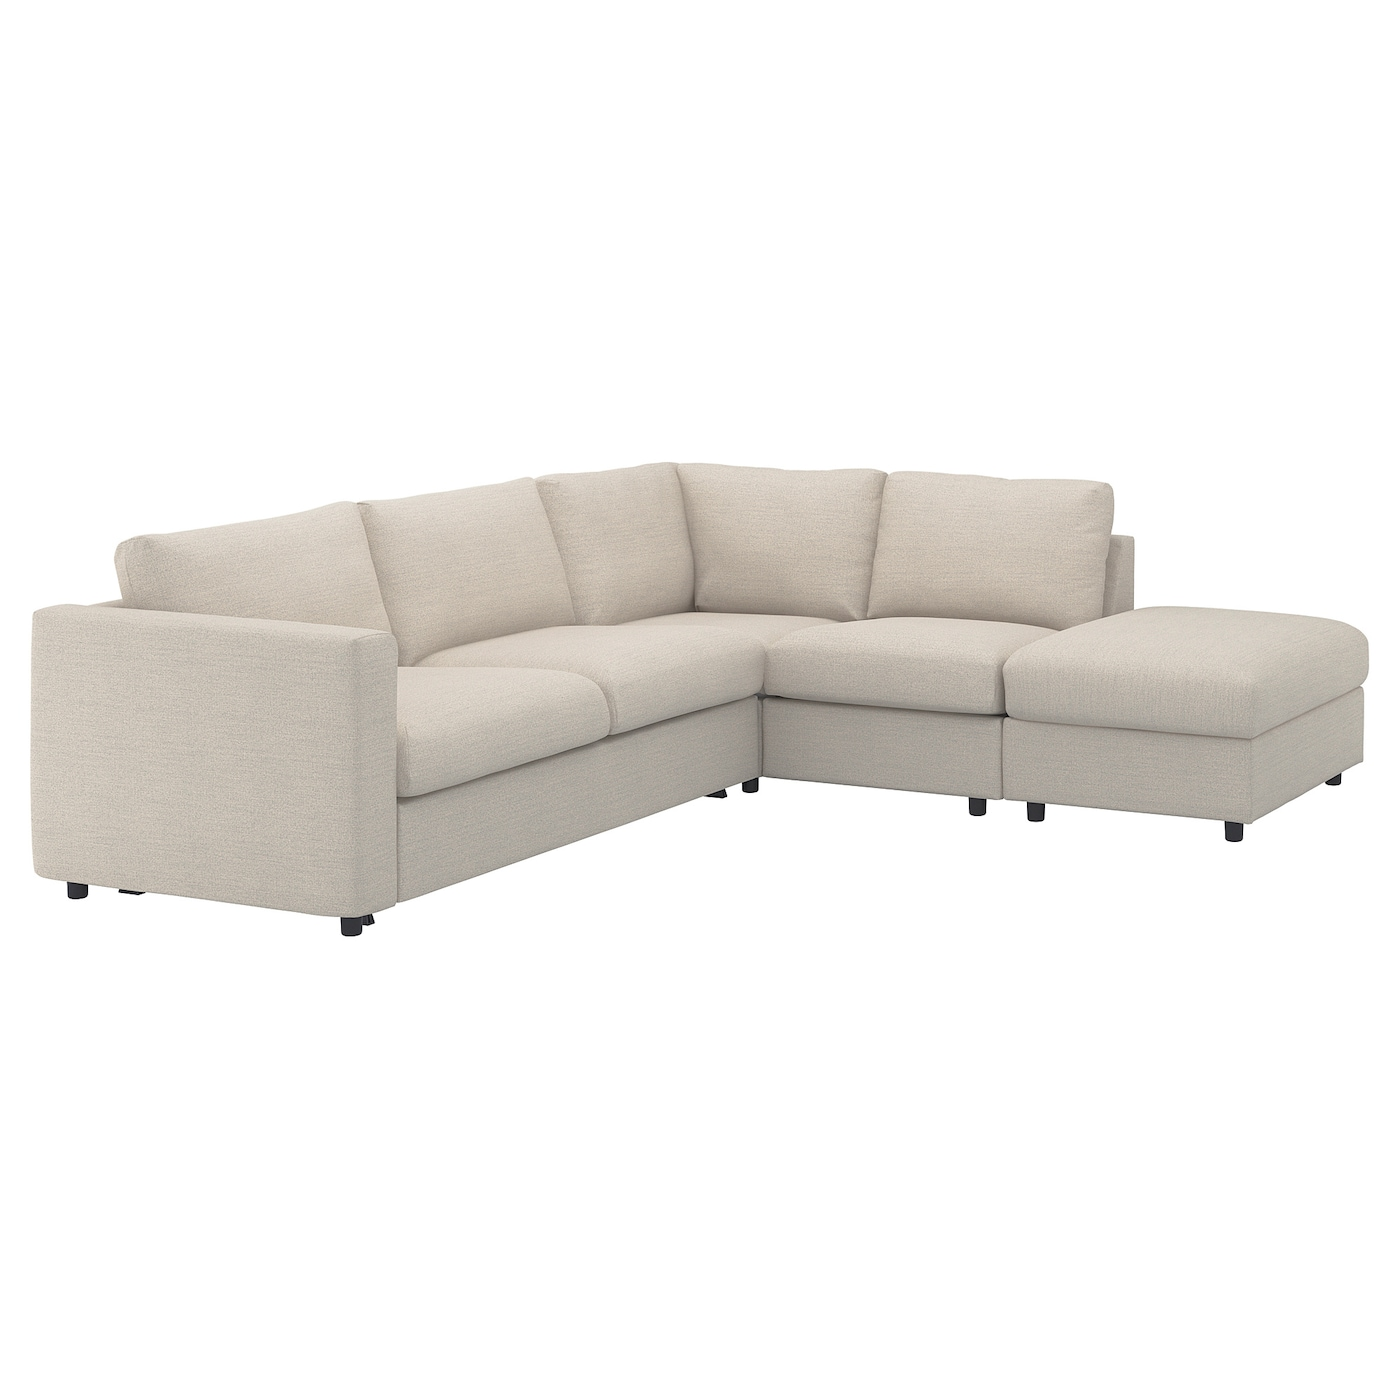 VIMLE Corner sofa bed, 4 seat with open end, Gunnared beige